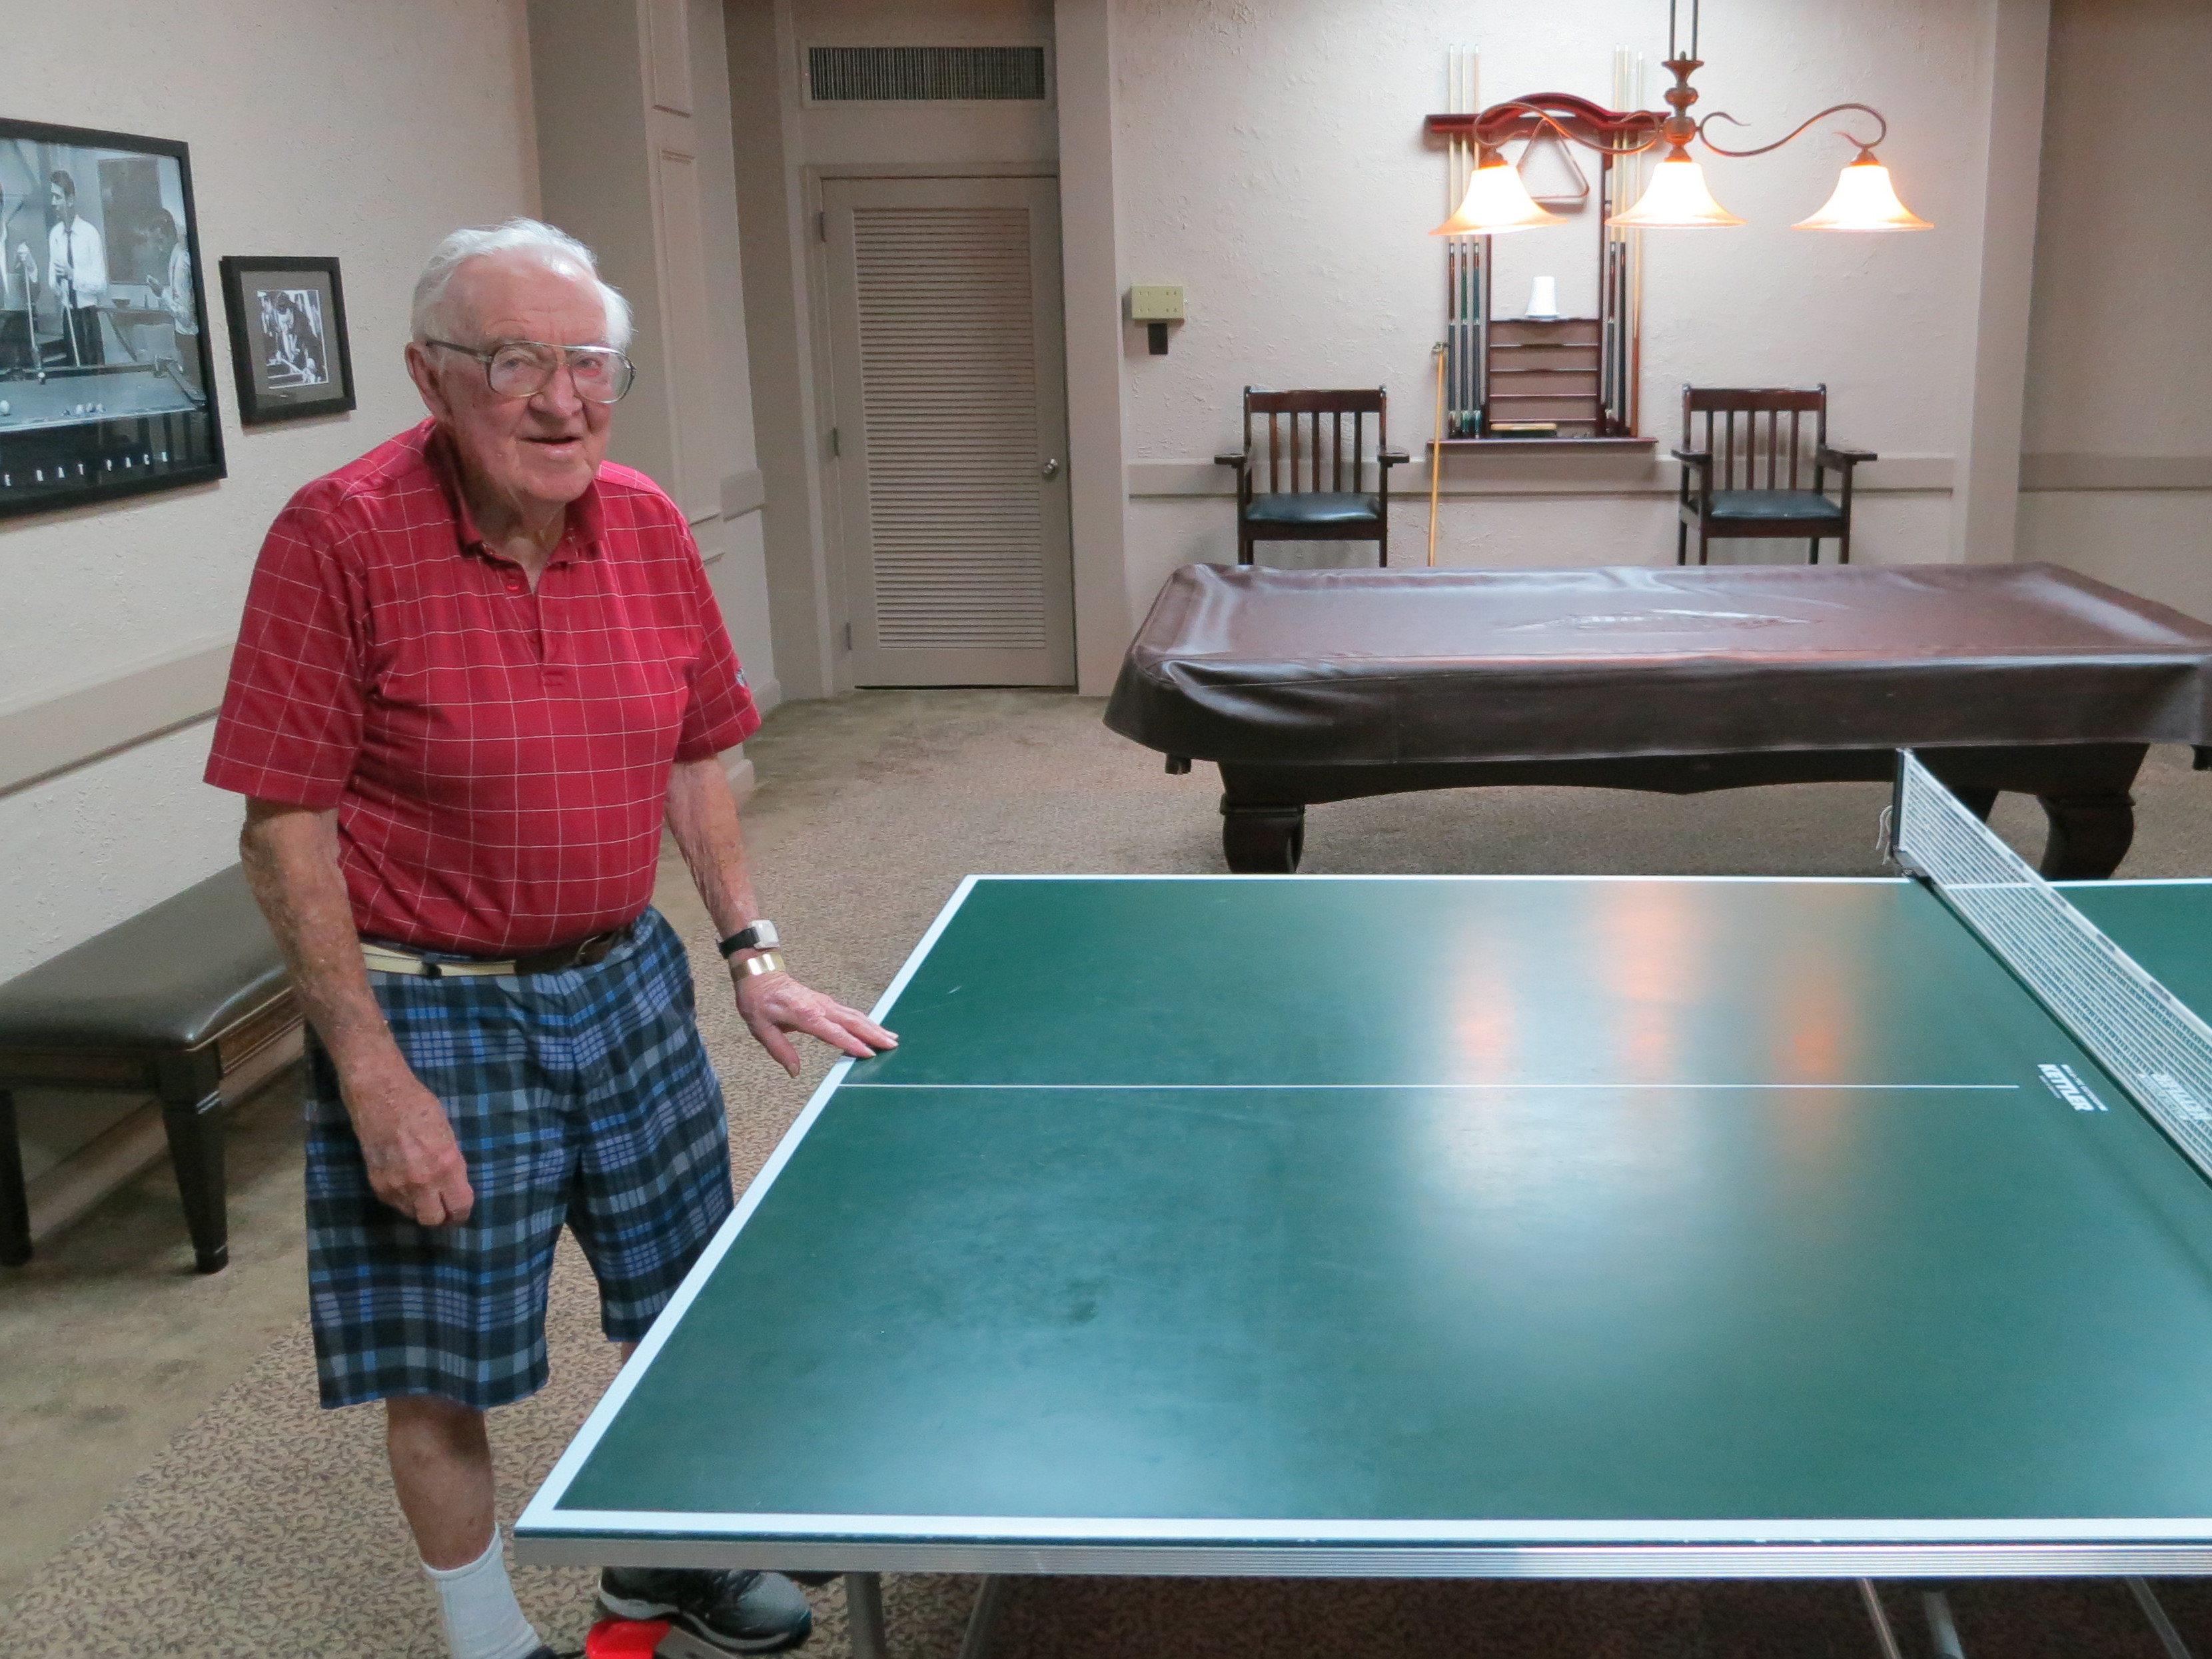 These days, at age 99, Stevens plays table tennis and golf. His new book, The Making of a Justice, publishes on Tuesday.